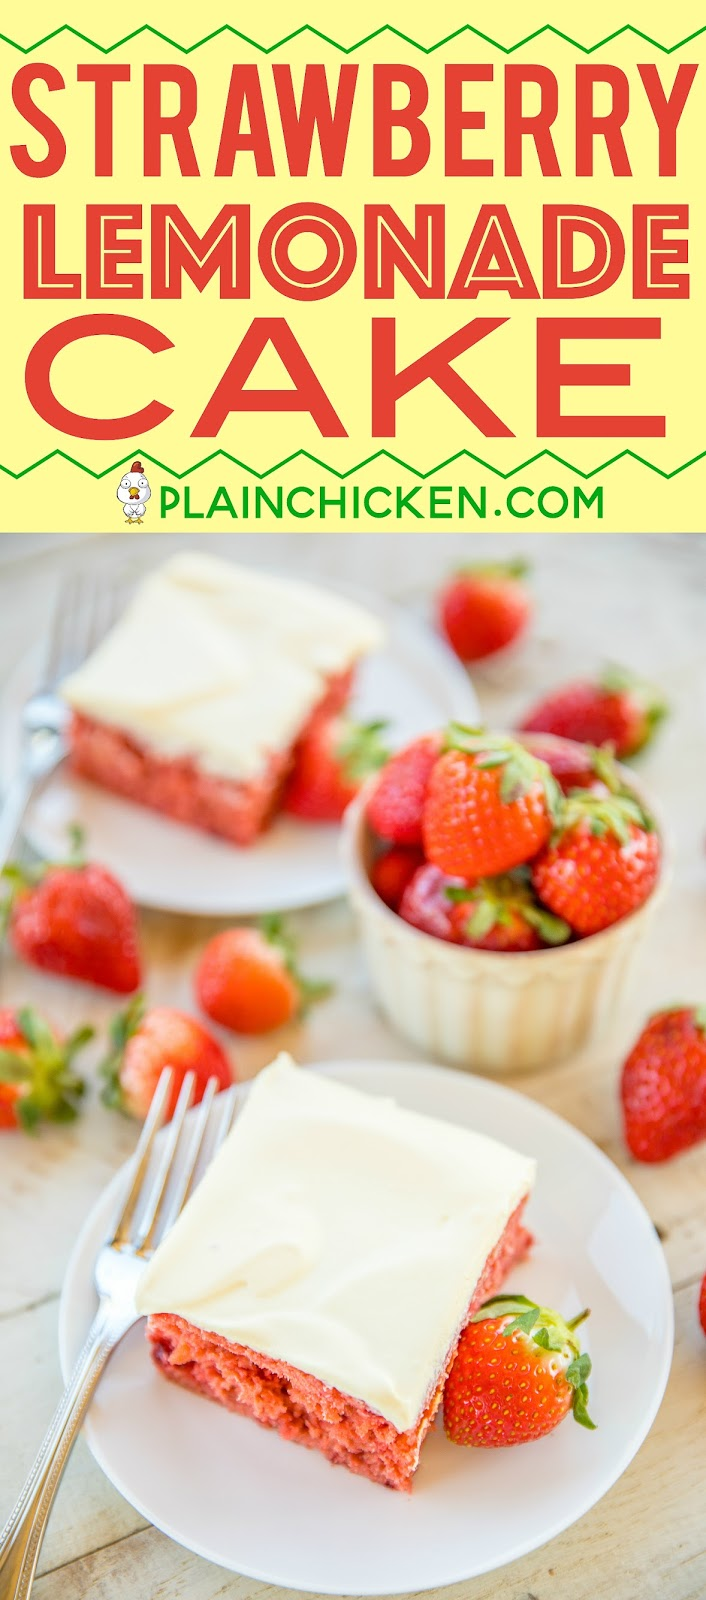 Strawberry Lemonade Cake - lemon cake mix and strawberry pie filling combine to make one amazing dessert!!! Top the cake with a quick cool whip lemon pudding frosting. This cake is the most requested cake I make! I have to bring it to all of the potlucks I'm invited to. It is always the first dessert to go and everyone asks for the recipe! Make it today! #cake #dessert #strawberry #lemonade